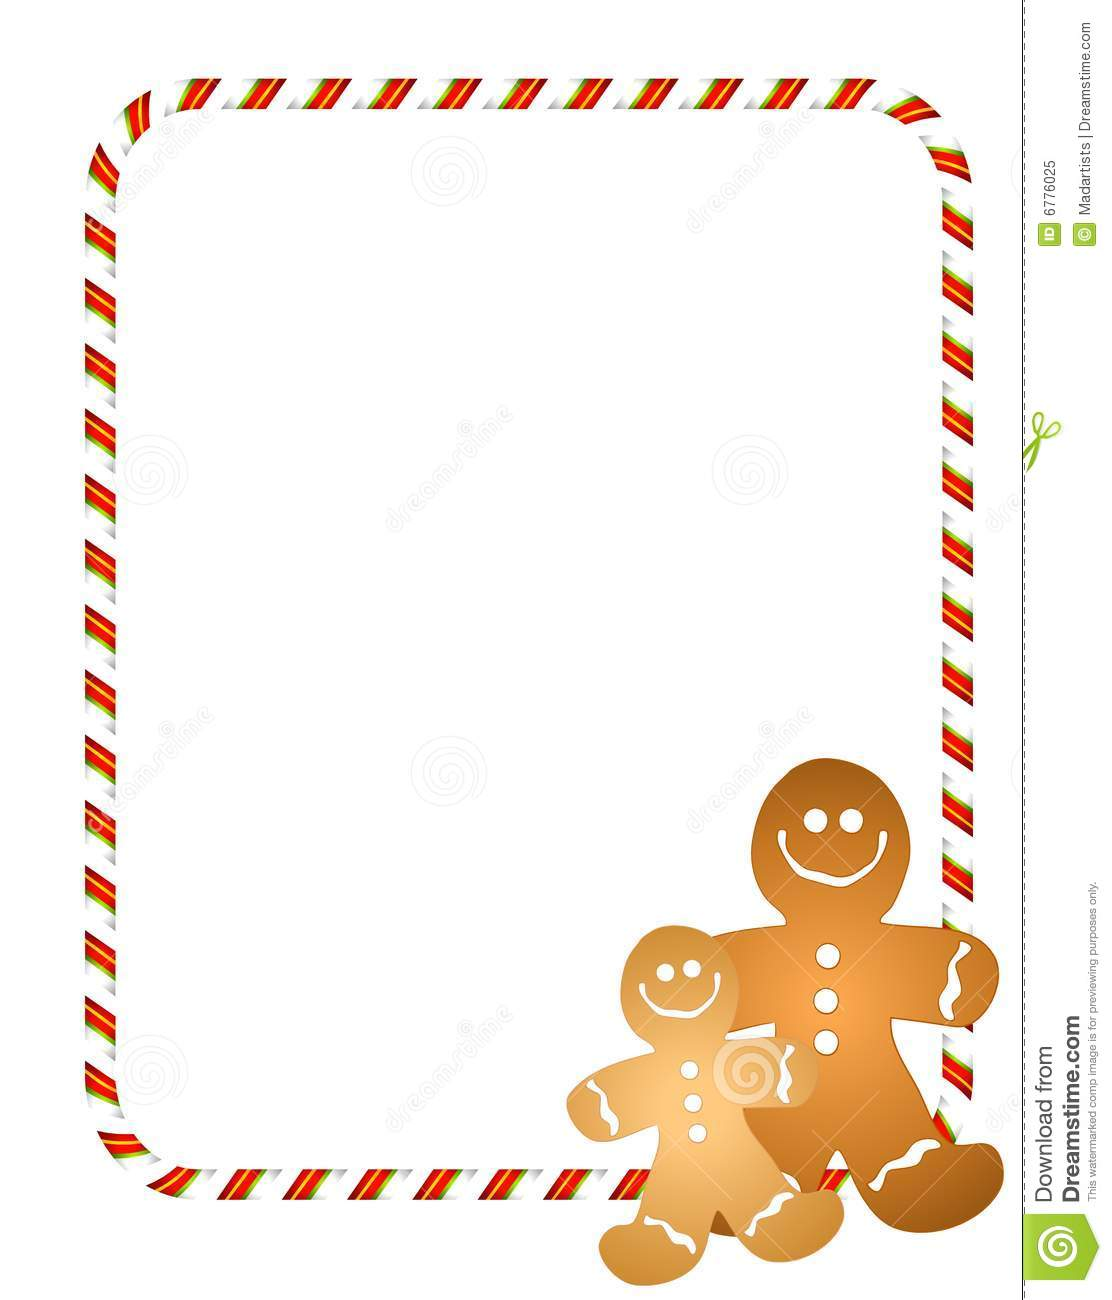 hight resolution of an illustration featuring a couple of gingerbread men with candy cane border or frame